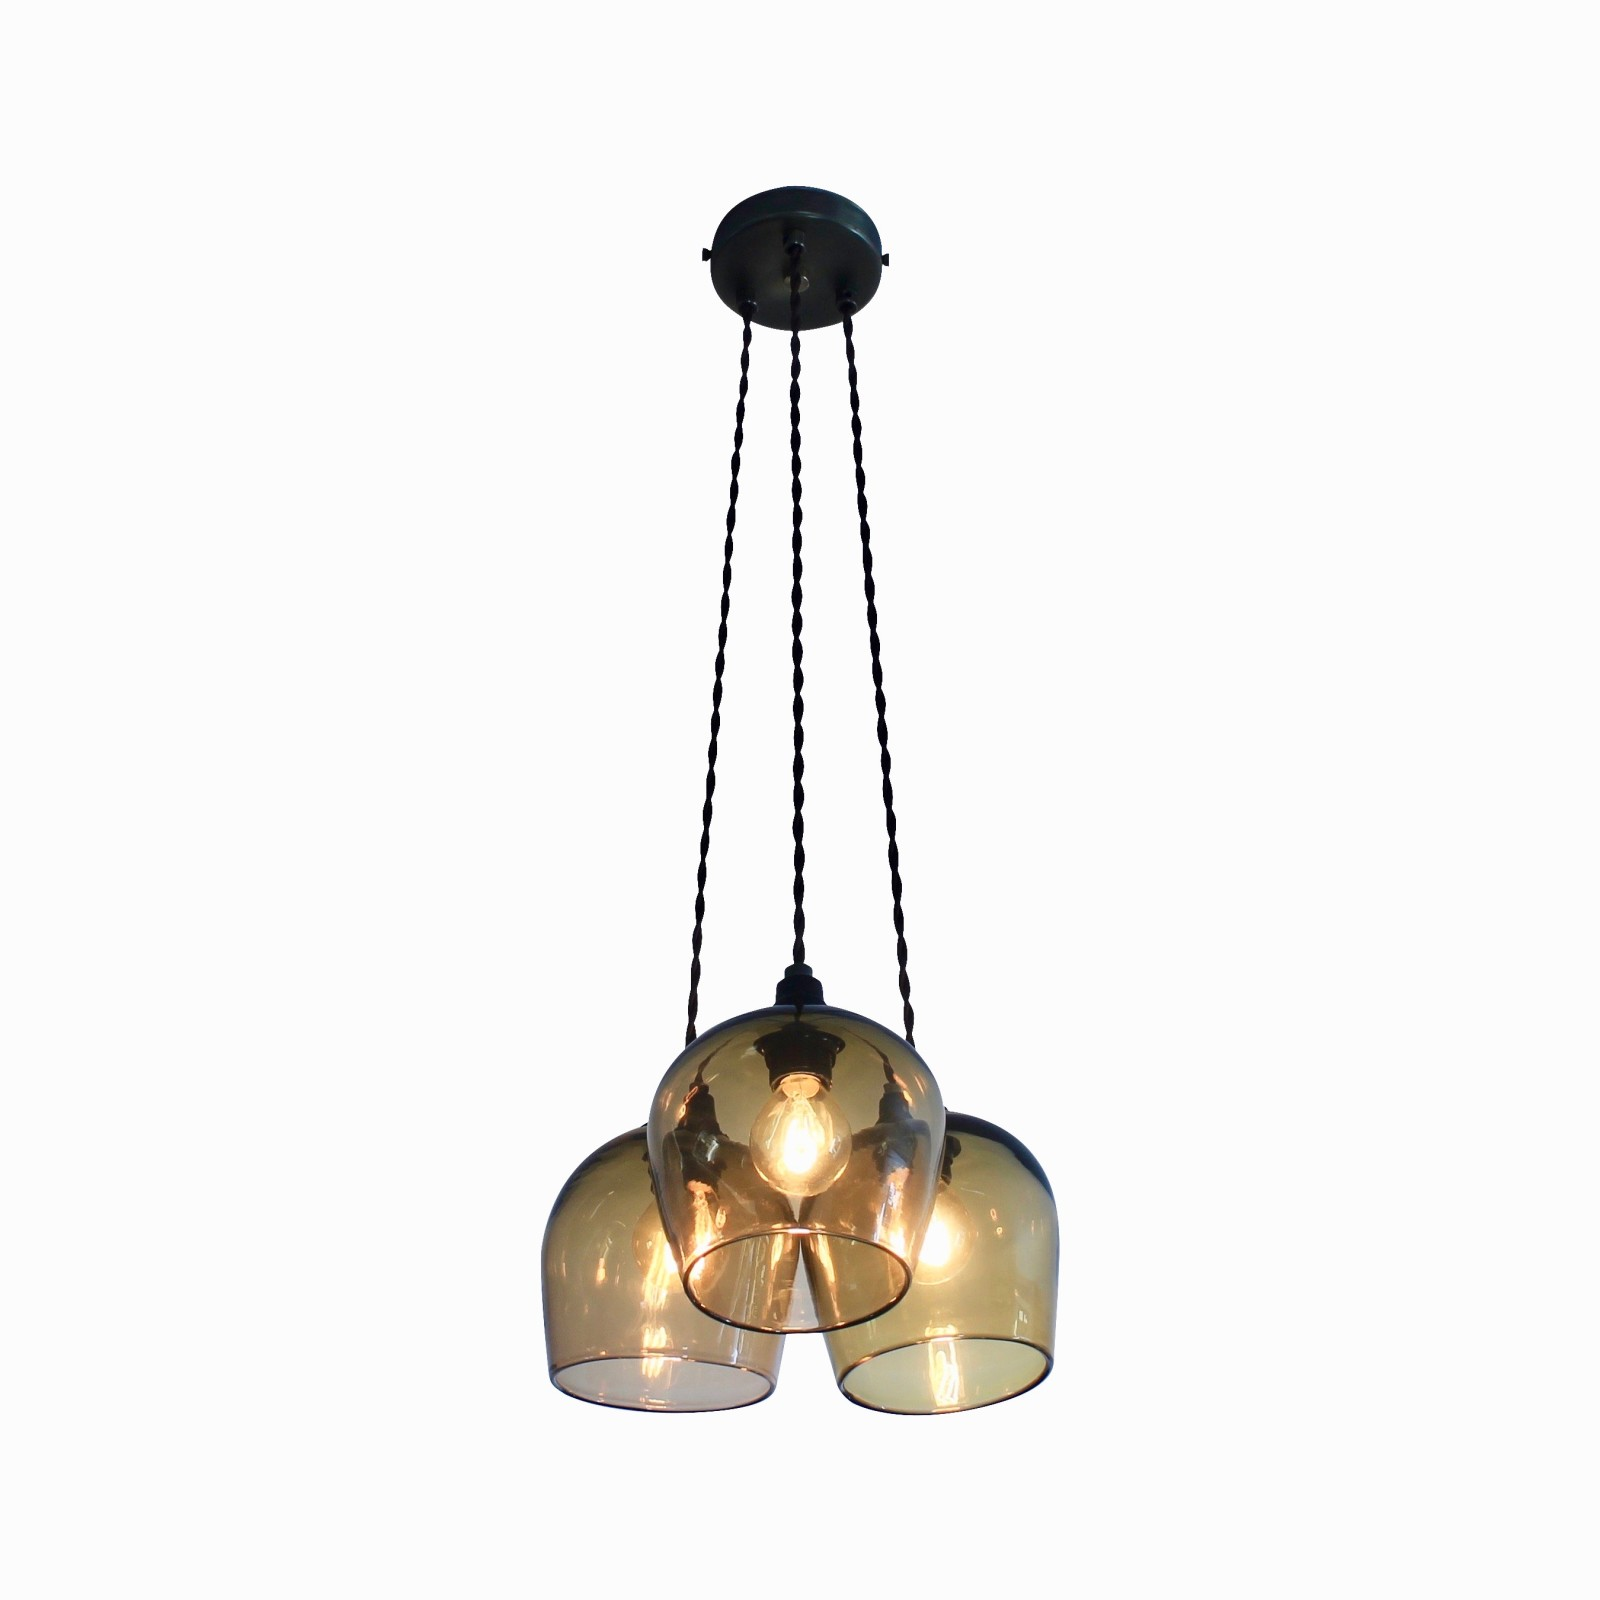 Bell 3-Drop Pendant Light Honey, 12.5cm